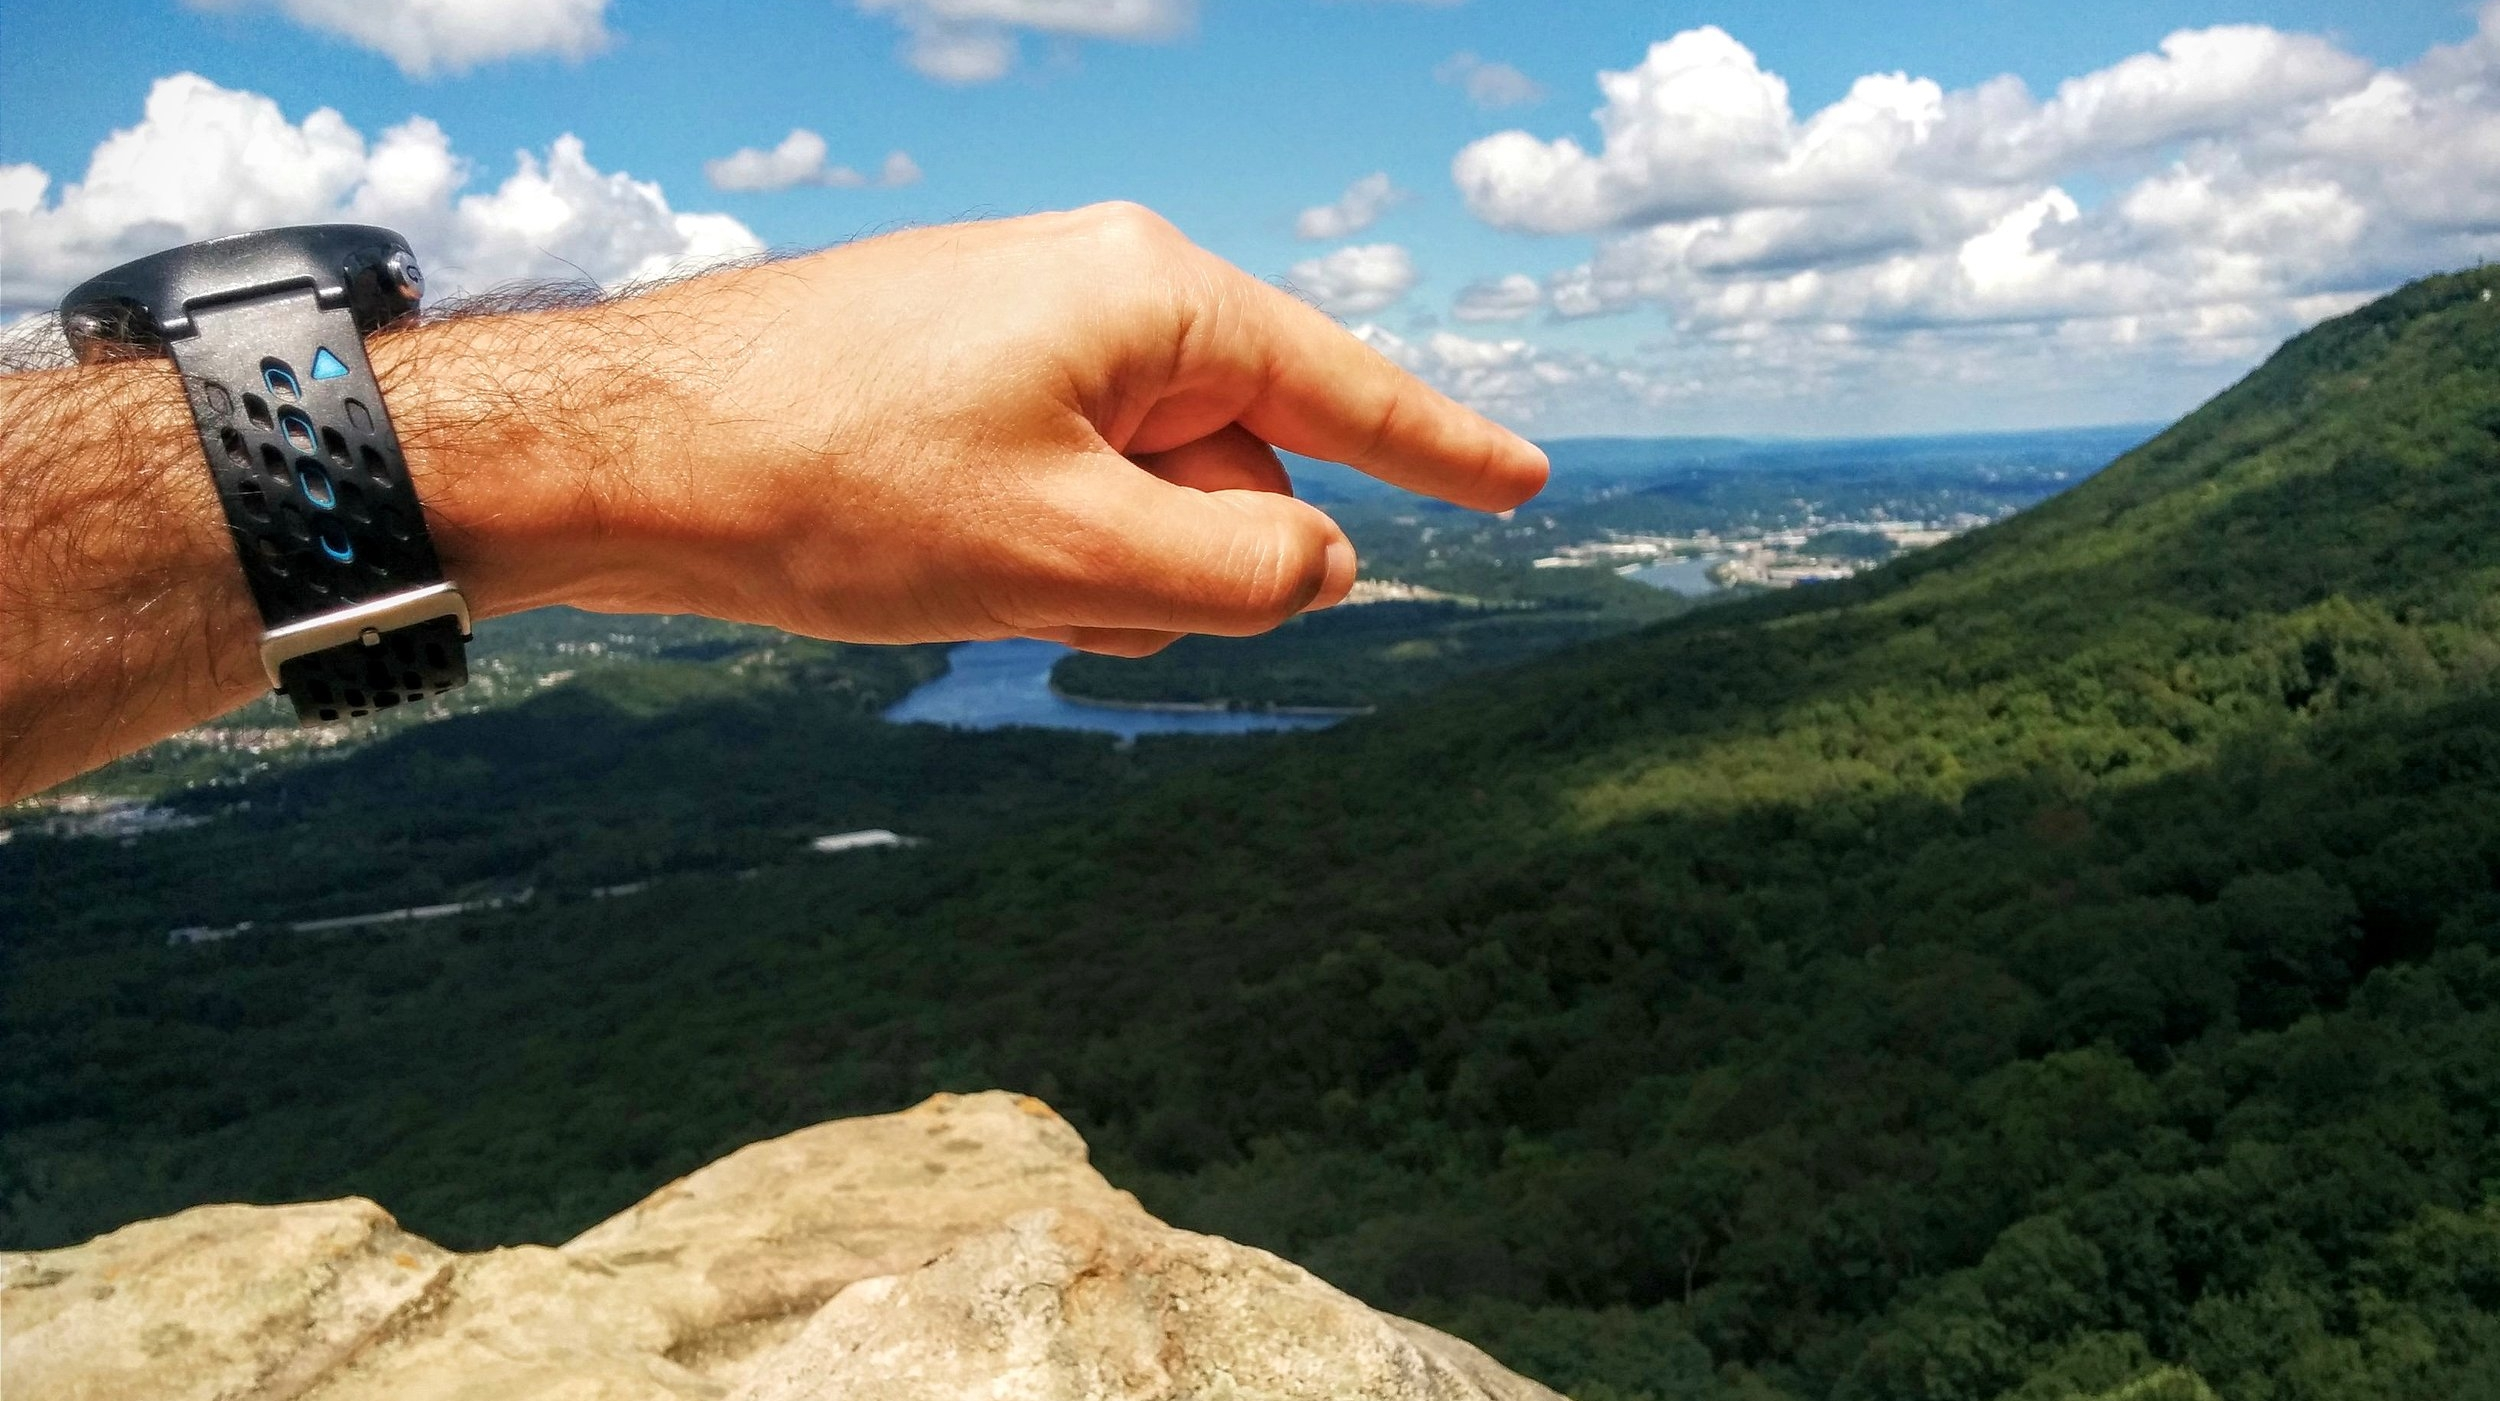 The view of Chattanooga from Sunset Rock